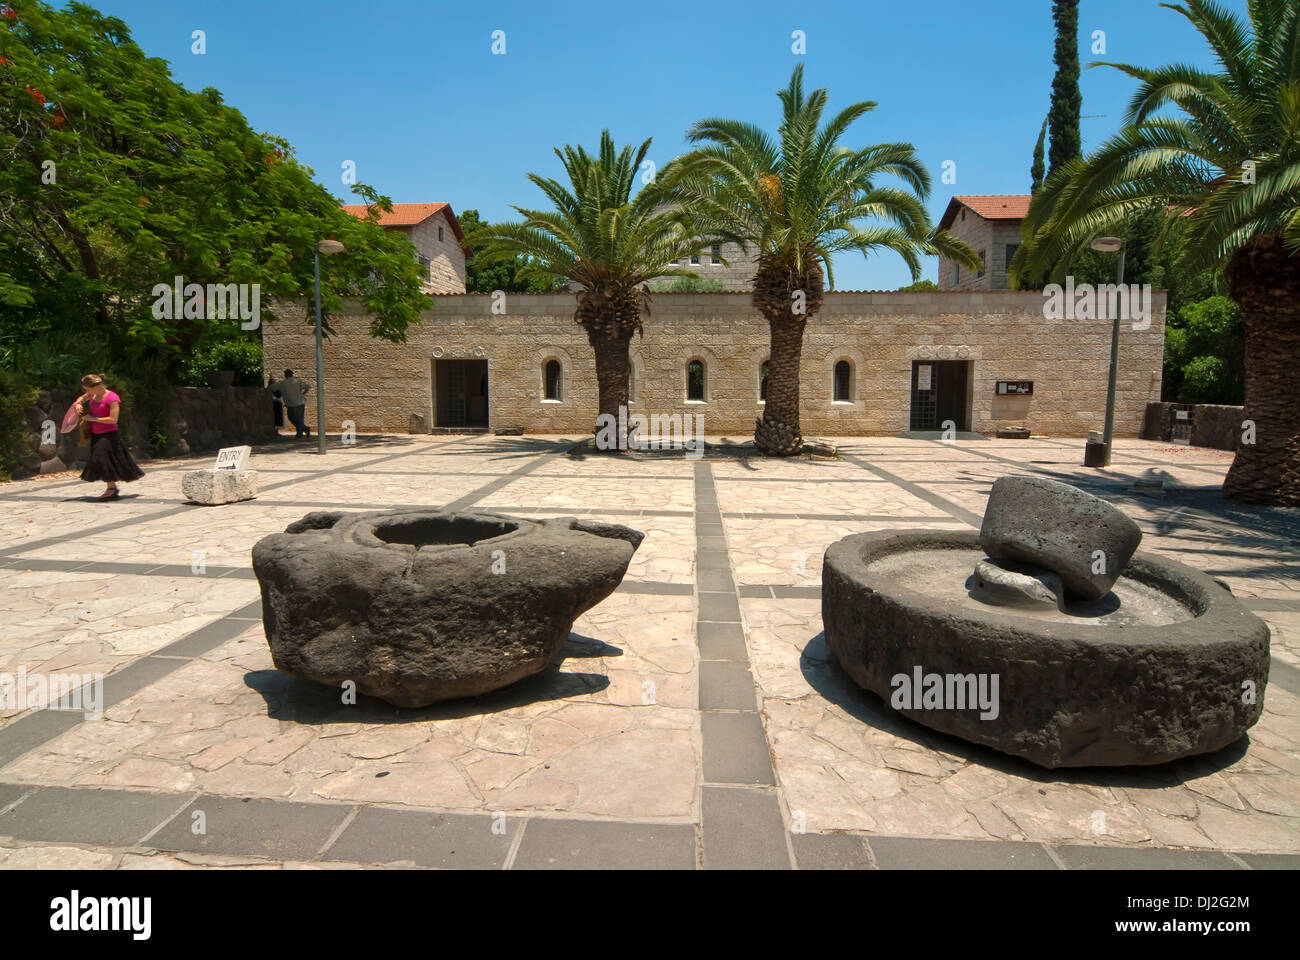 Church of the Multiplication of the Loaves and Fishes, Capernaum, Israel Stock Photo